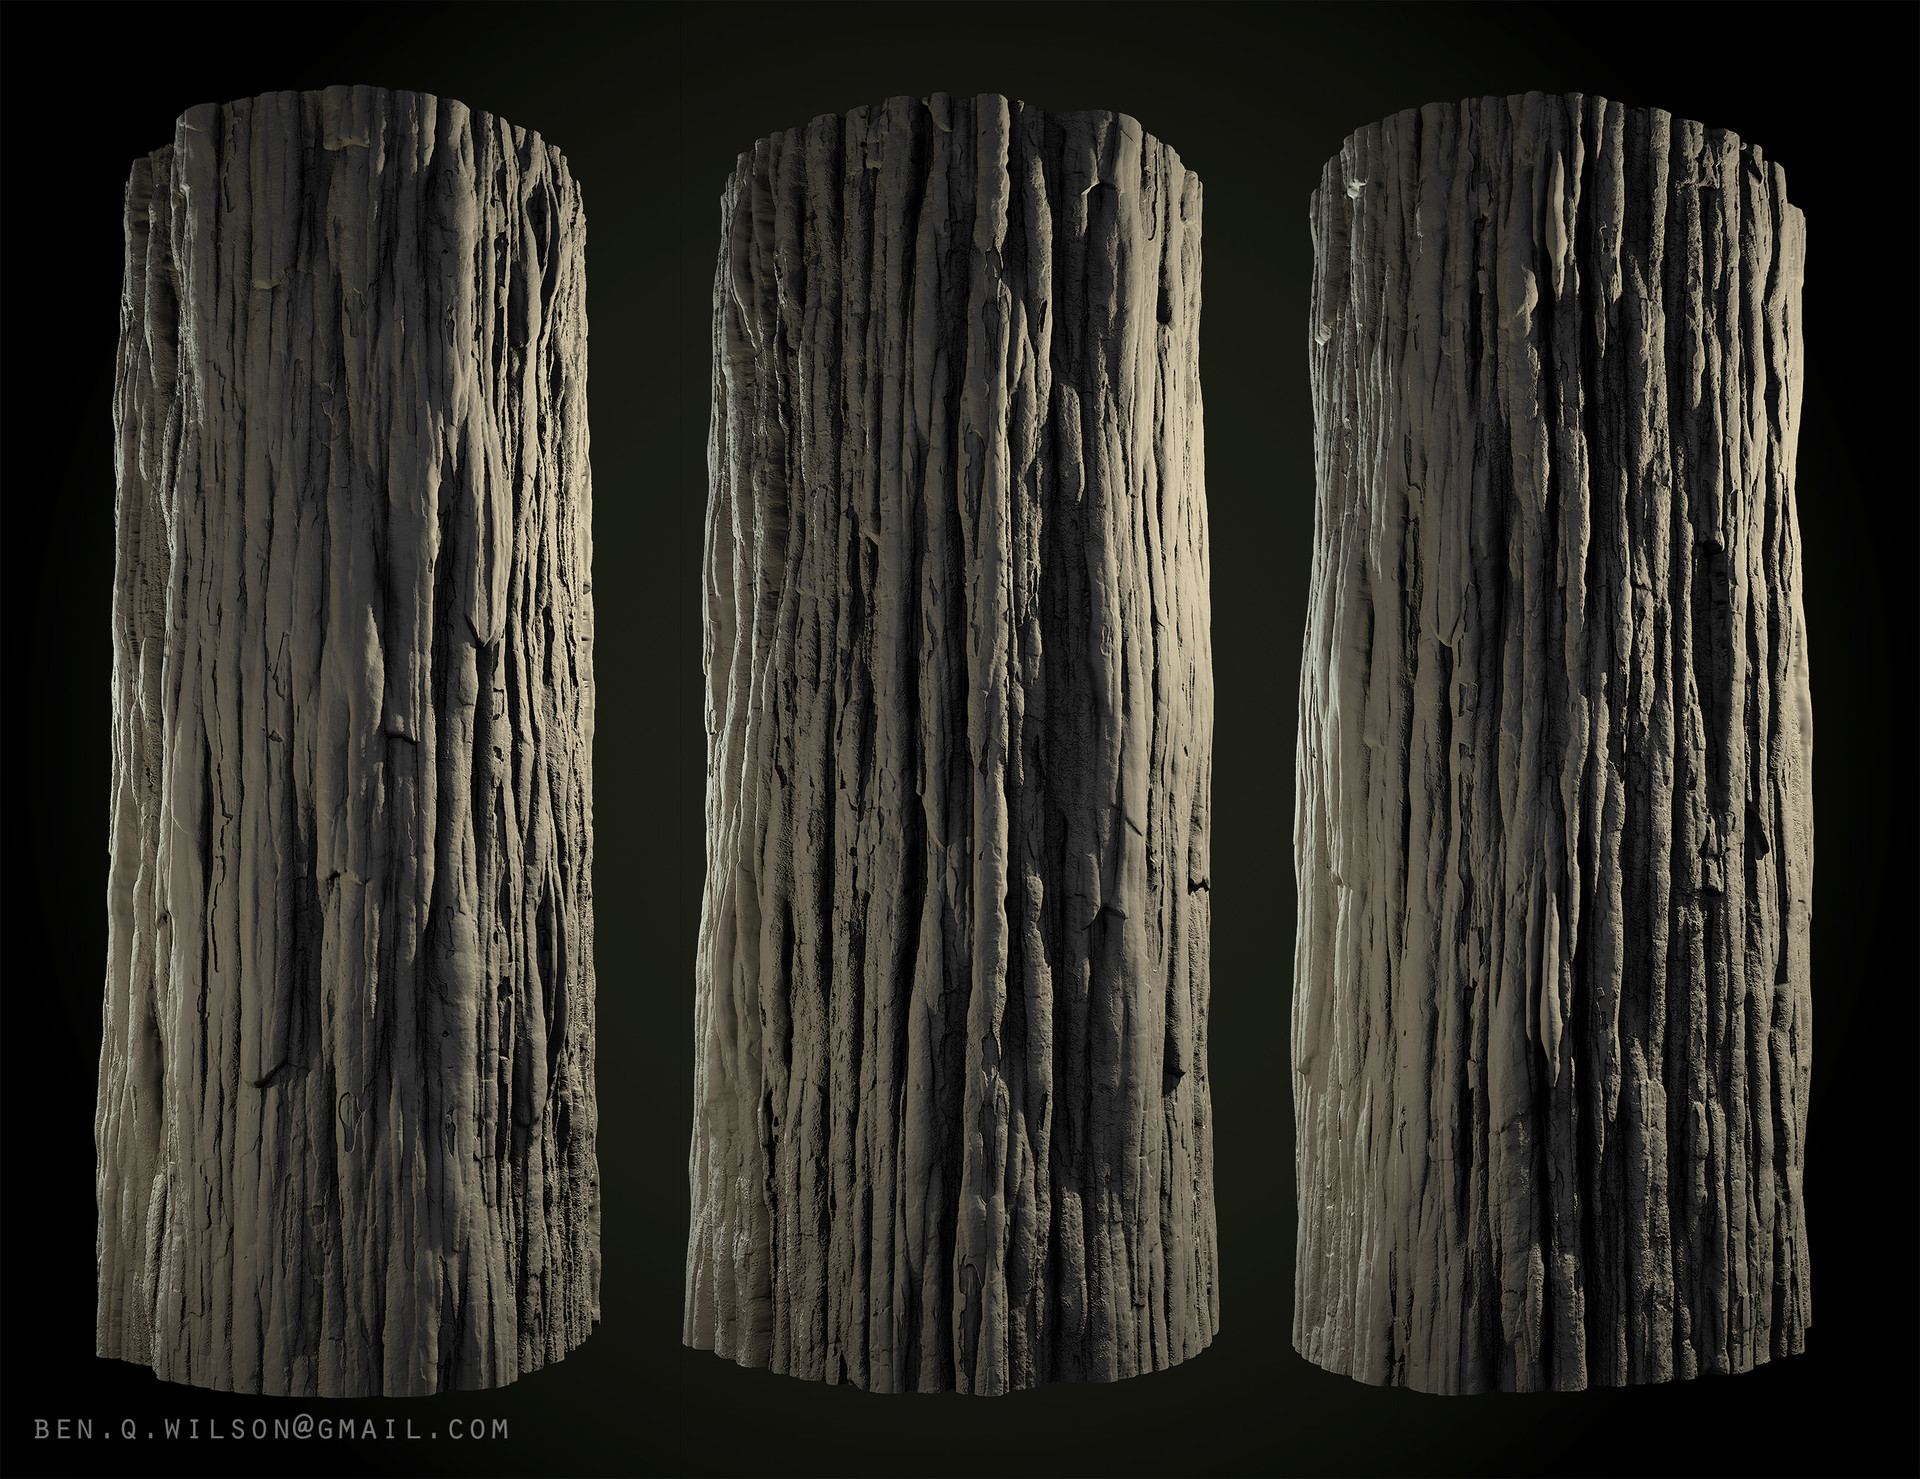 Ben wilson redwood bark a render b